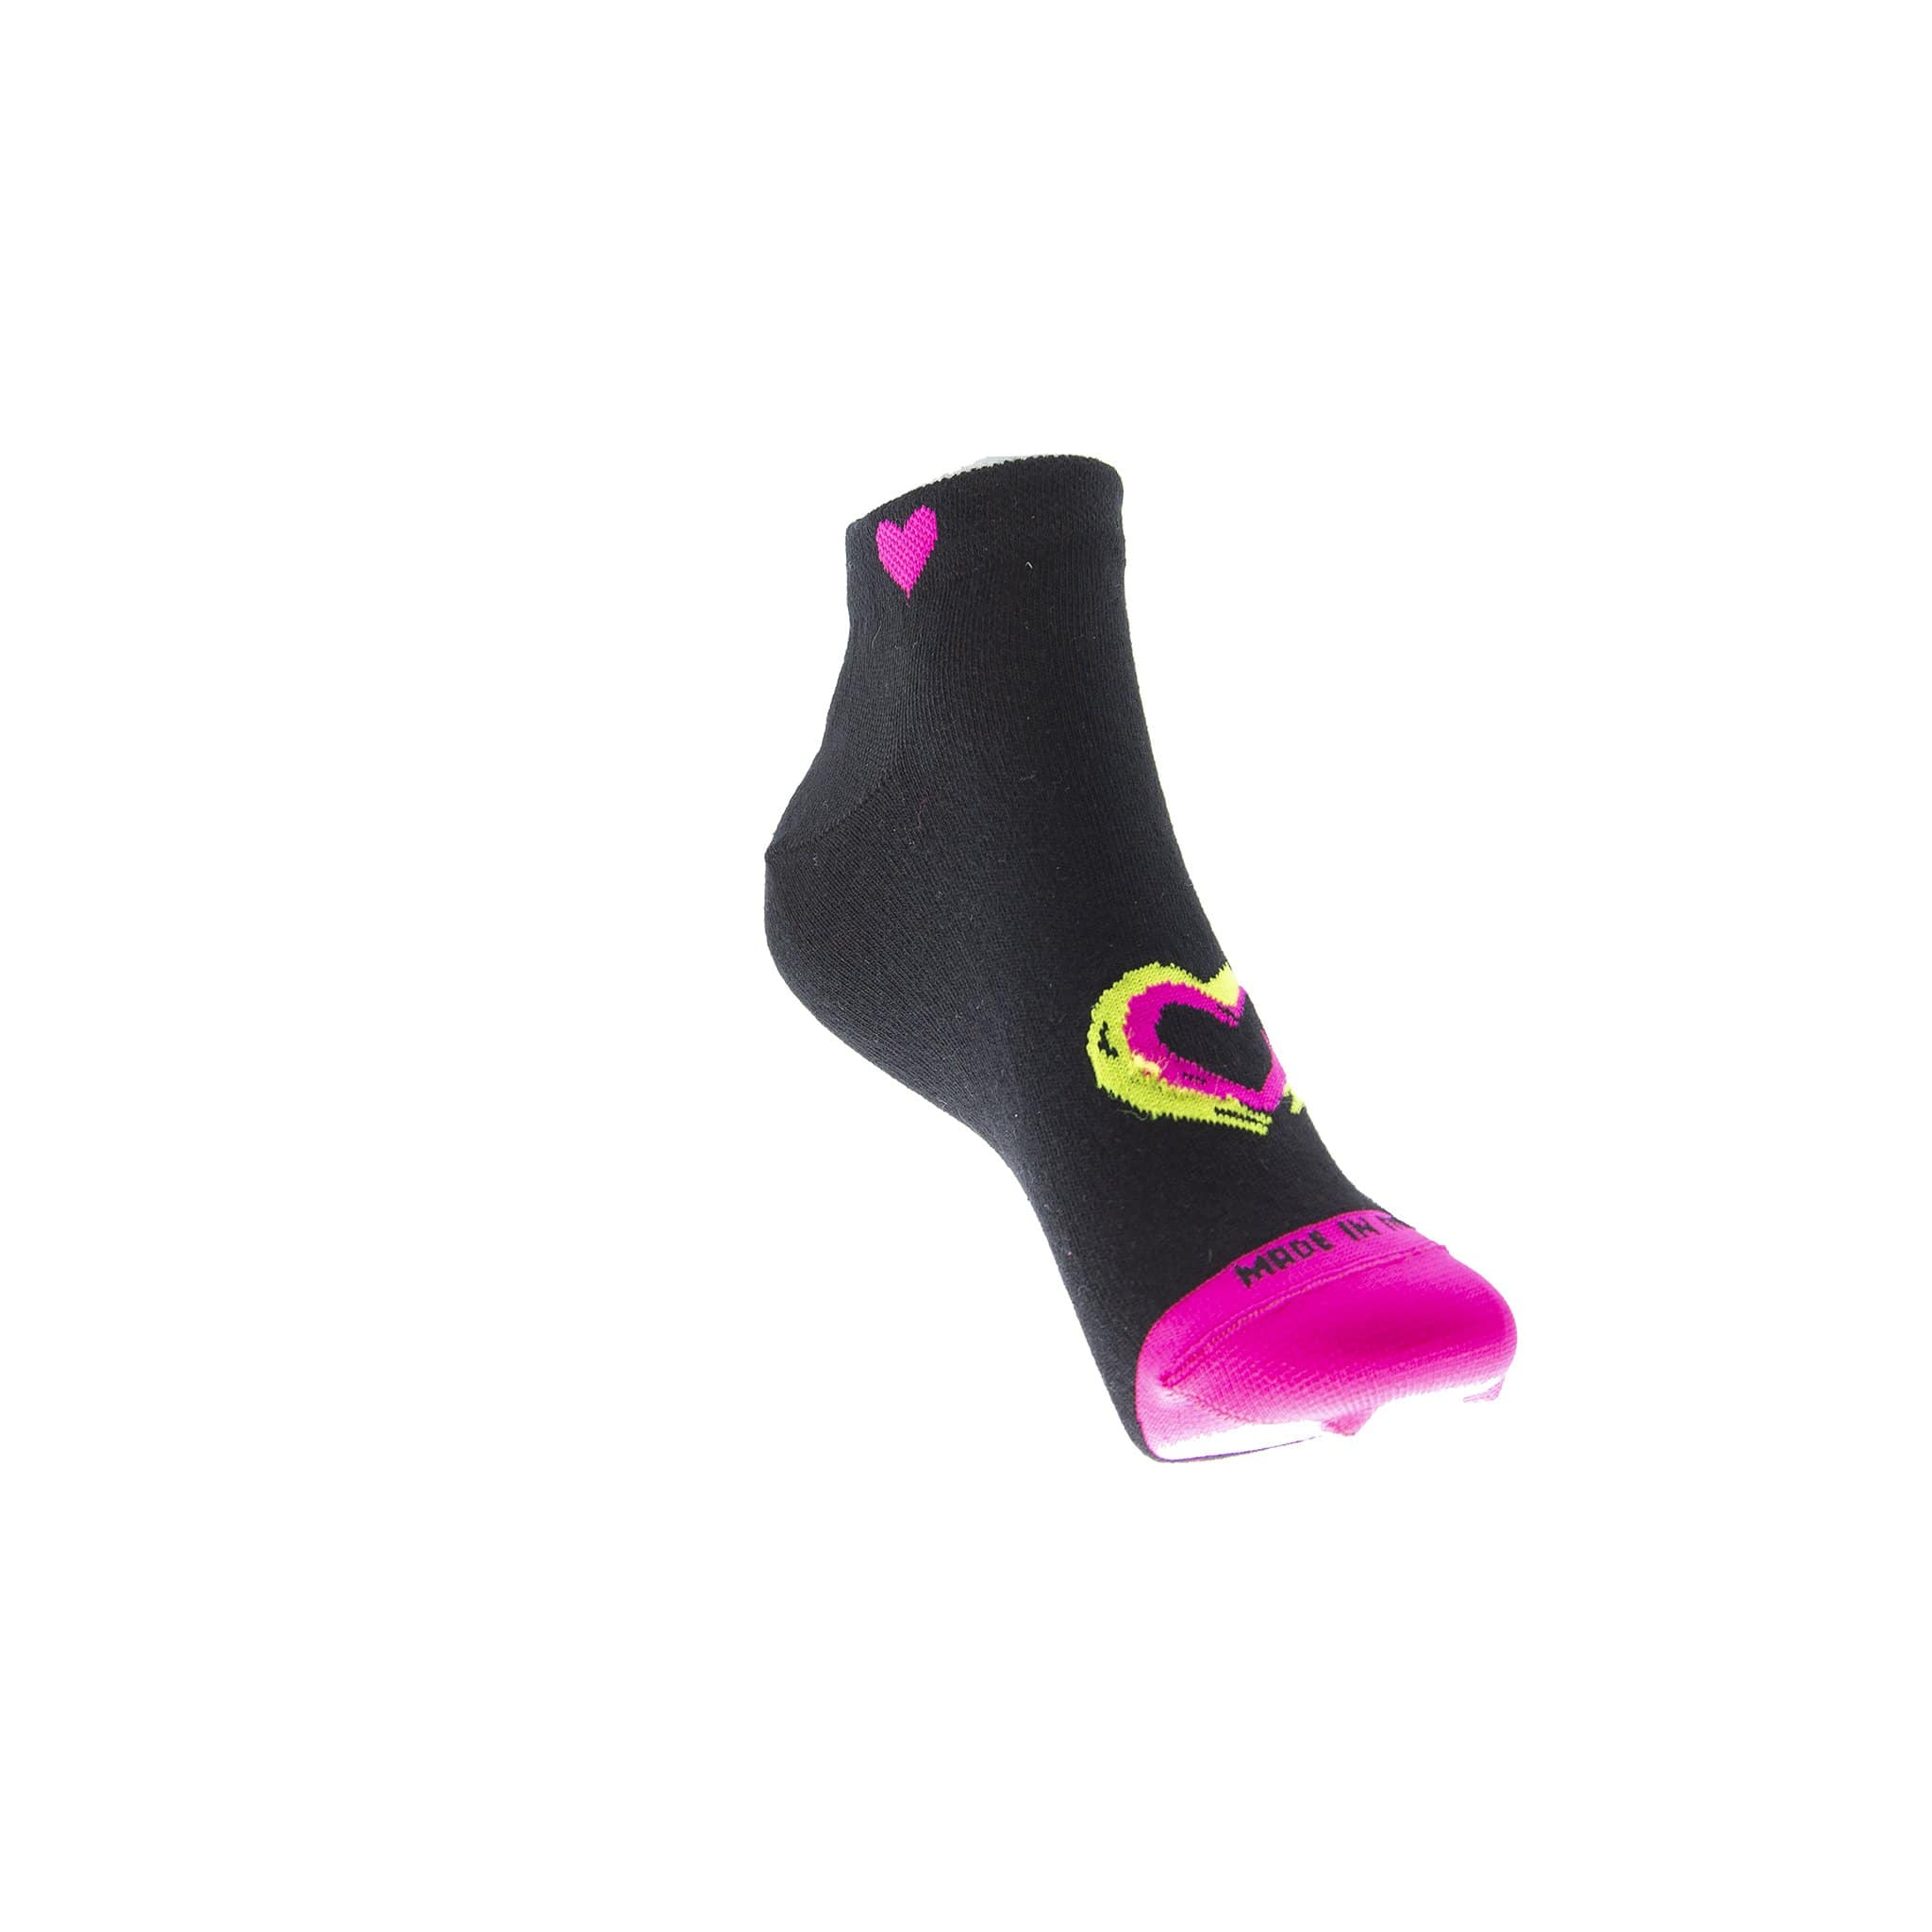 """SNEAKER LOVE FLUO"" FANCY <br> MADE IN ITALY CALZINO SINGOLO - DONNA <br> Componi il TUO paio soxplay 36-40 Black-FluoYellowPink"